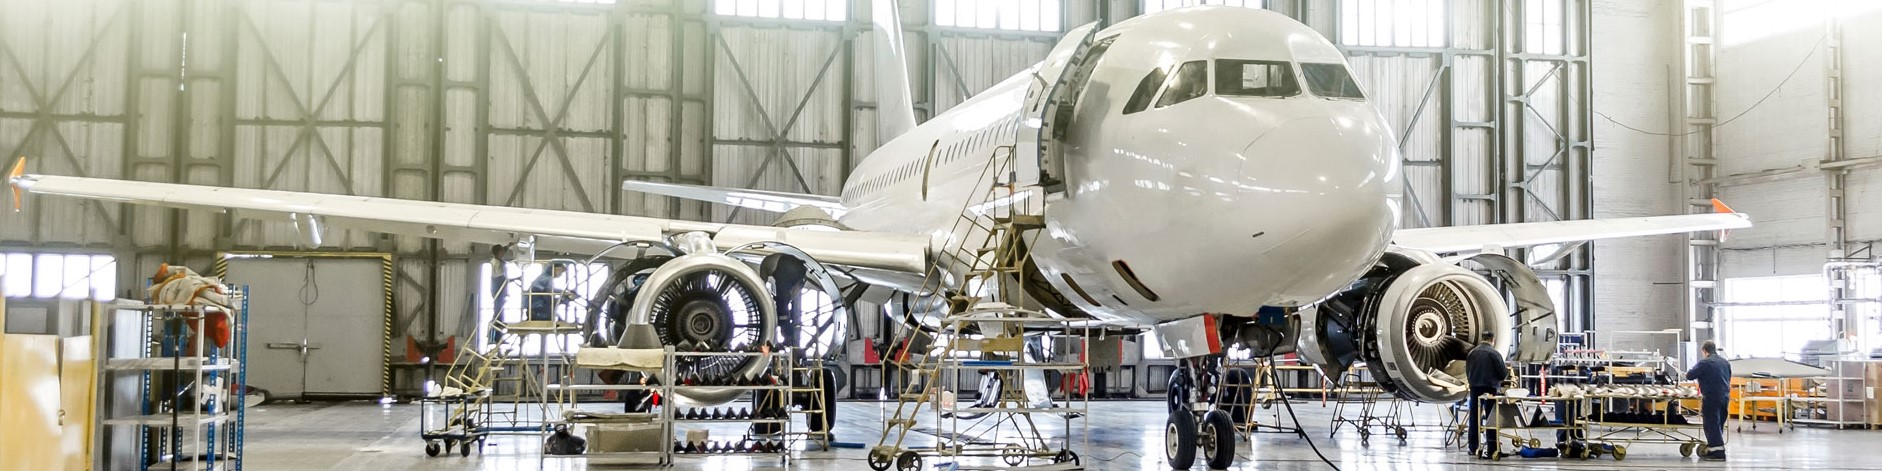 Illustration for: Aviation adhesive films products for MROs and Repair shops